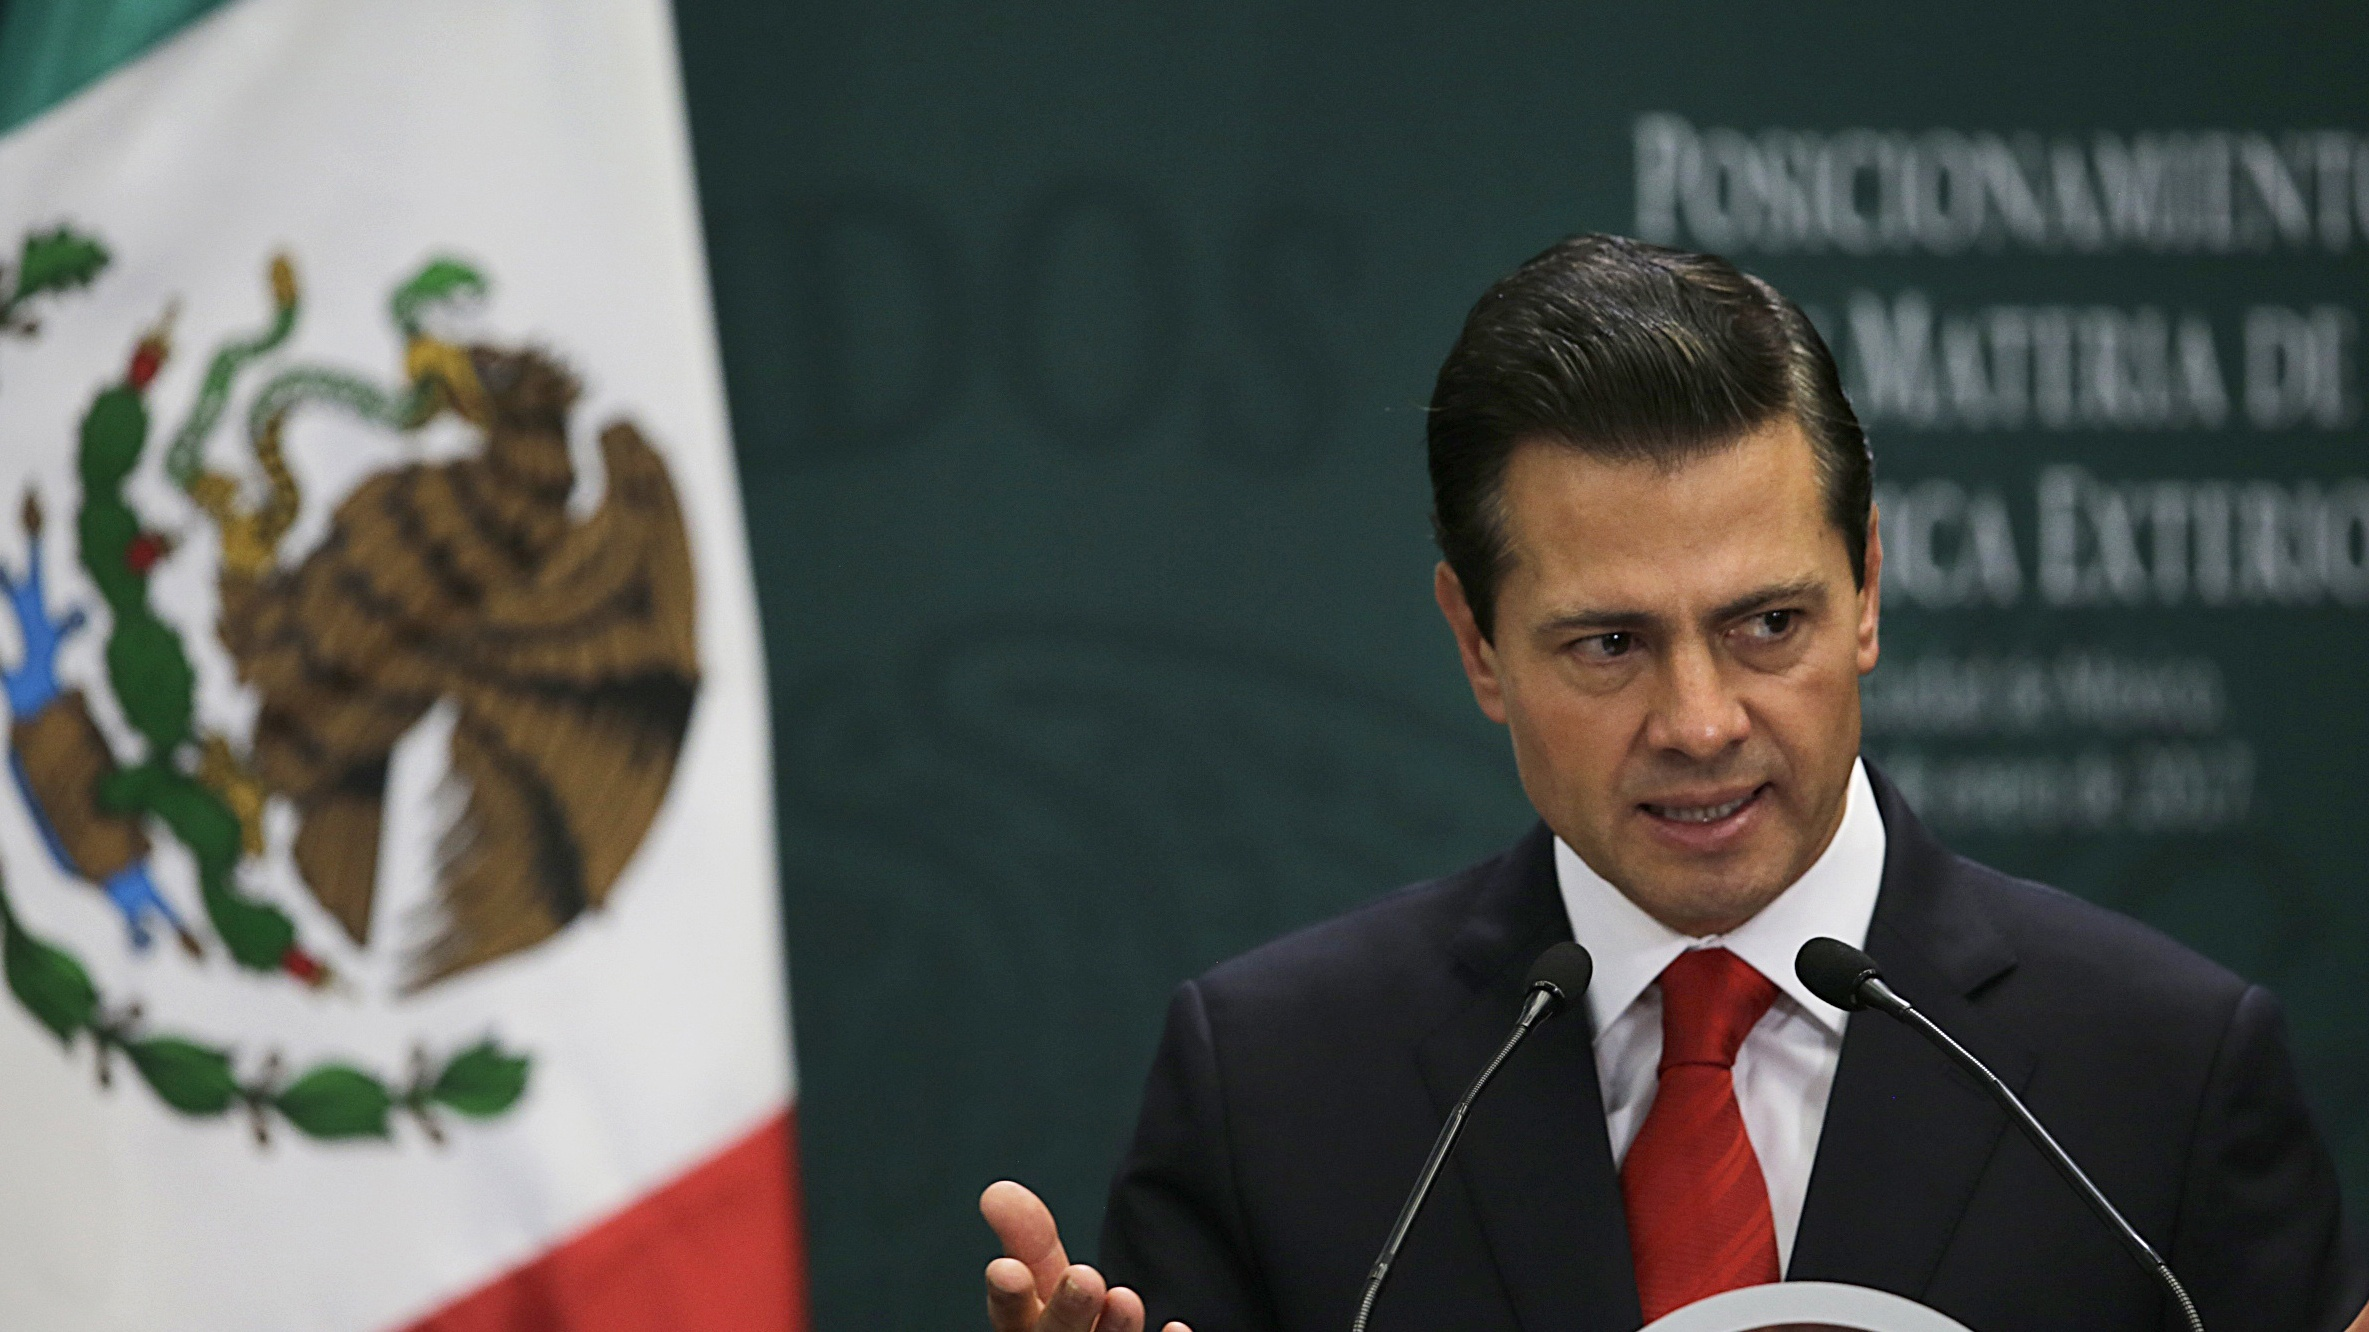 Mexico's President Enrique Pena Nieto took to Twitter to say he had informed the White House he would not be visiting Donald Trump next week.